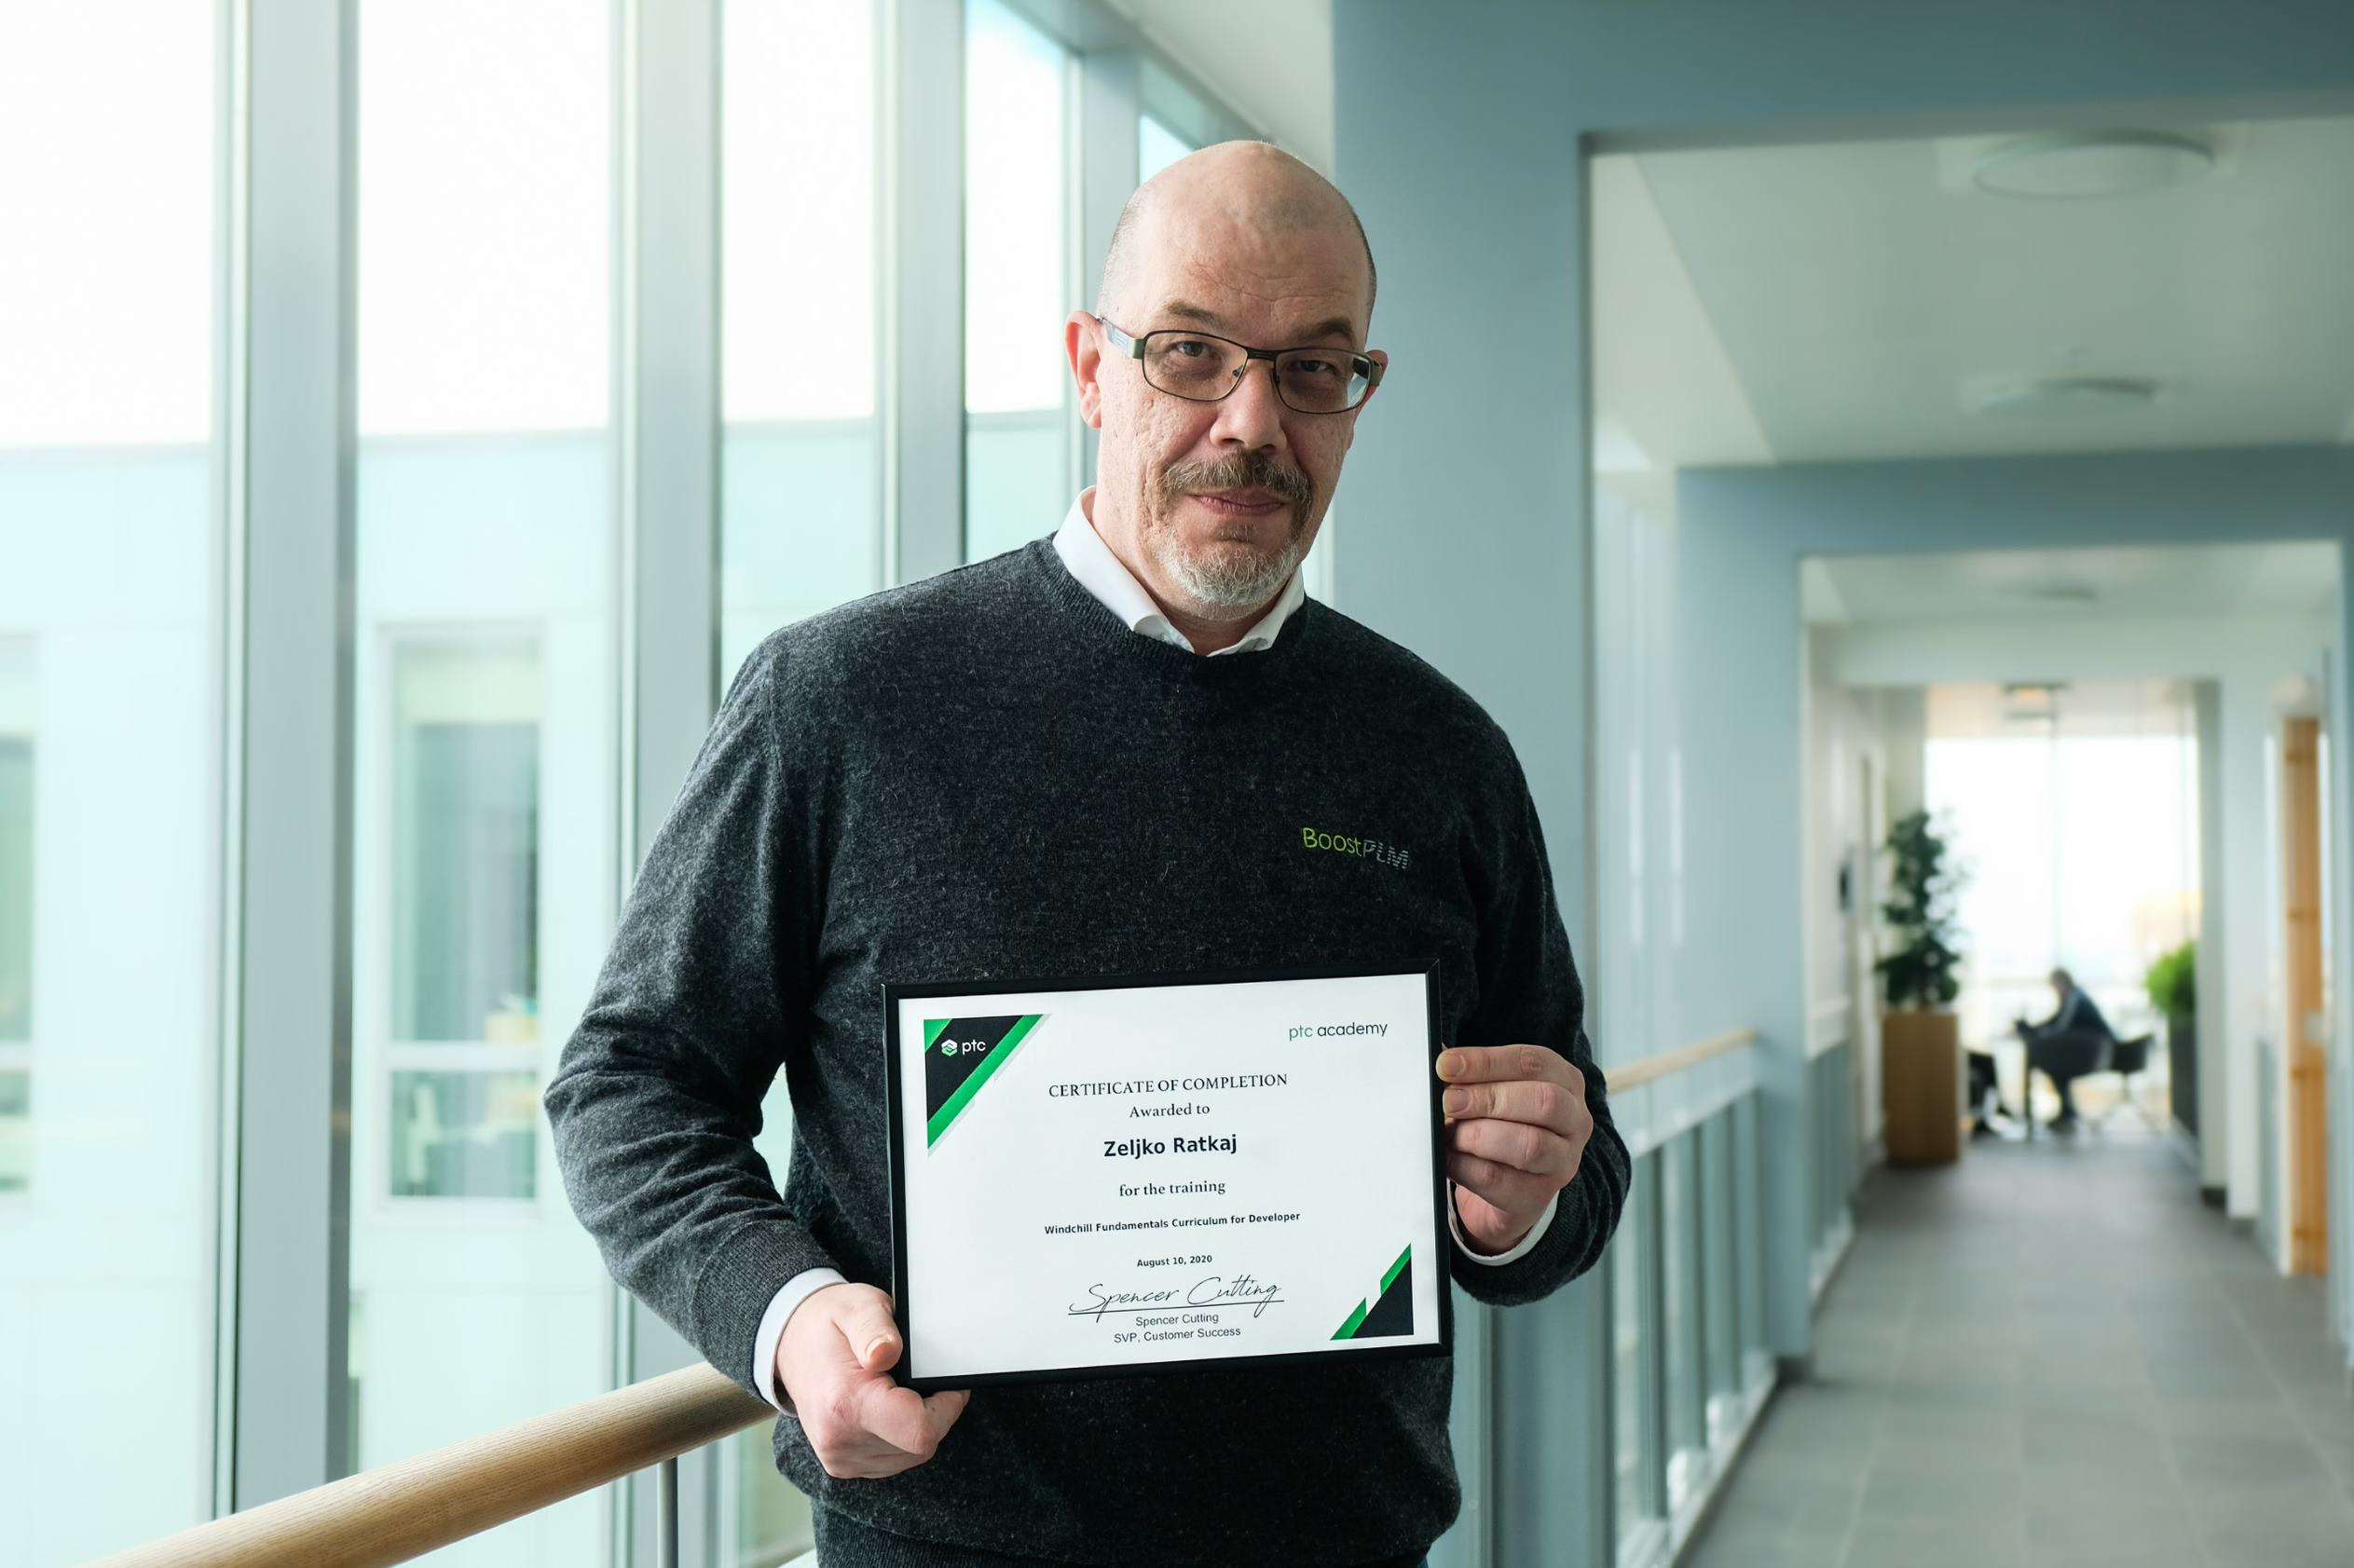 Zeljko with certificate